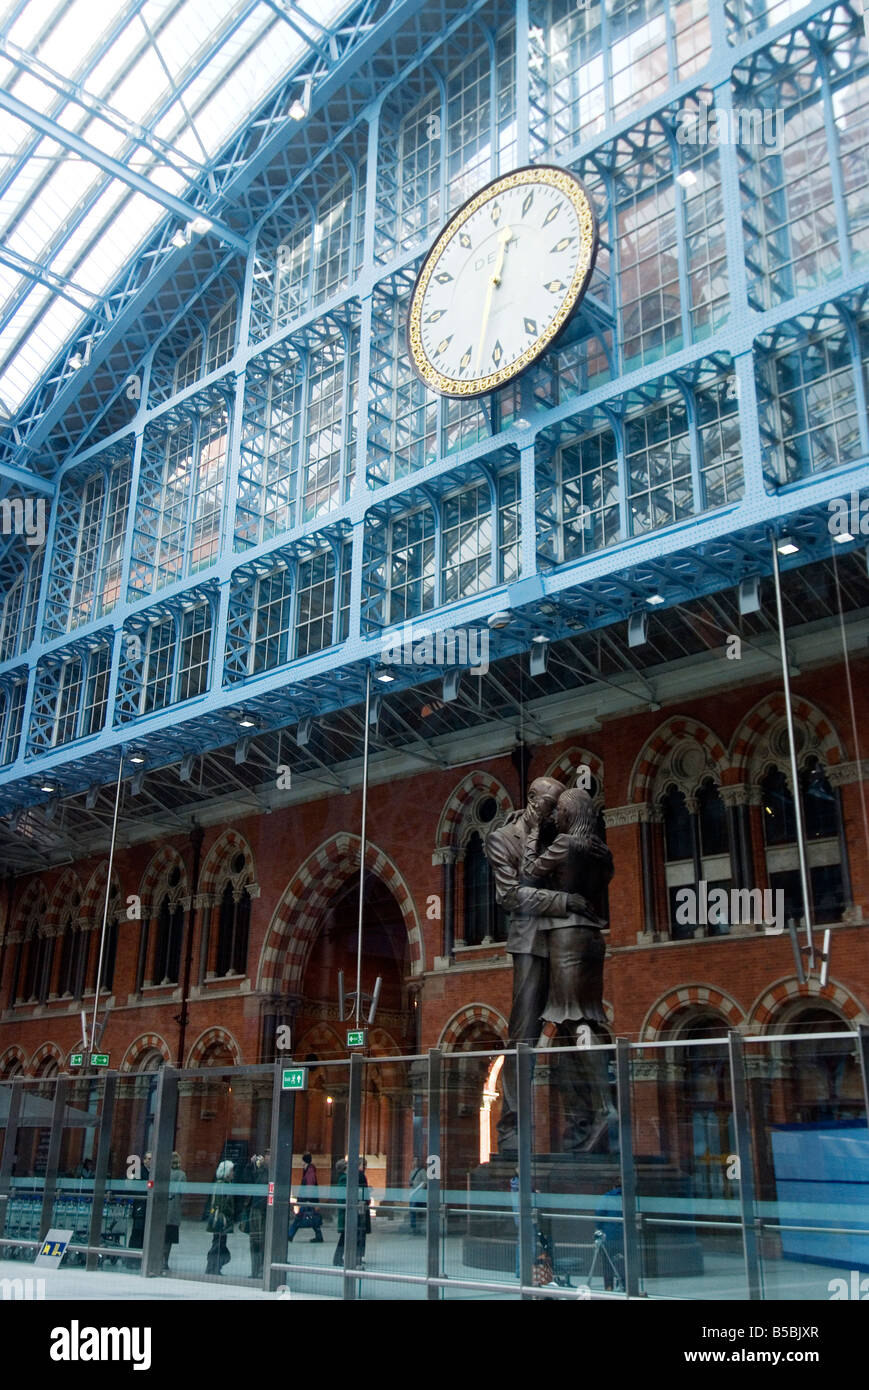 St. Pancras International Train Station, London, England, Europe - Stock Image